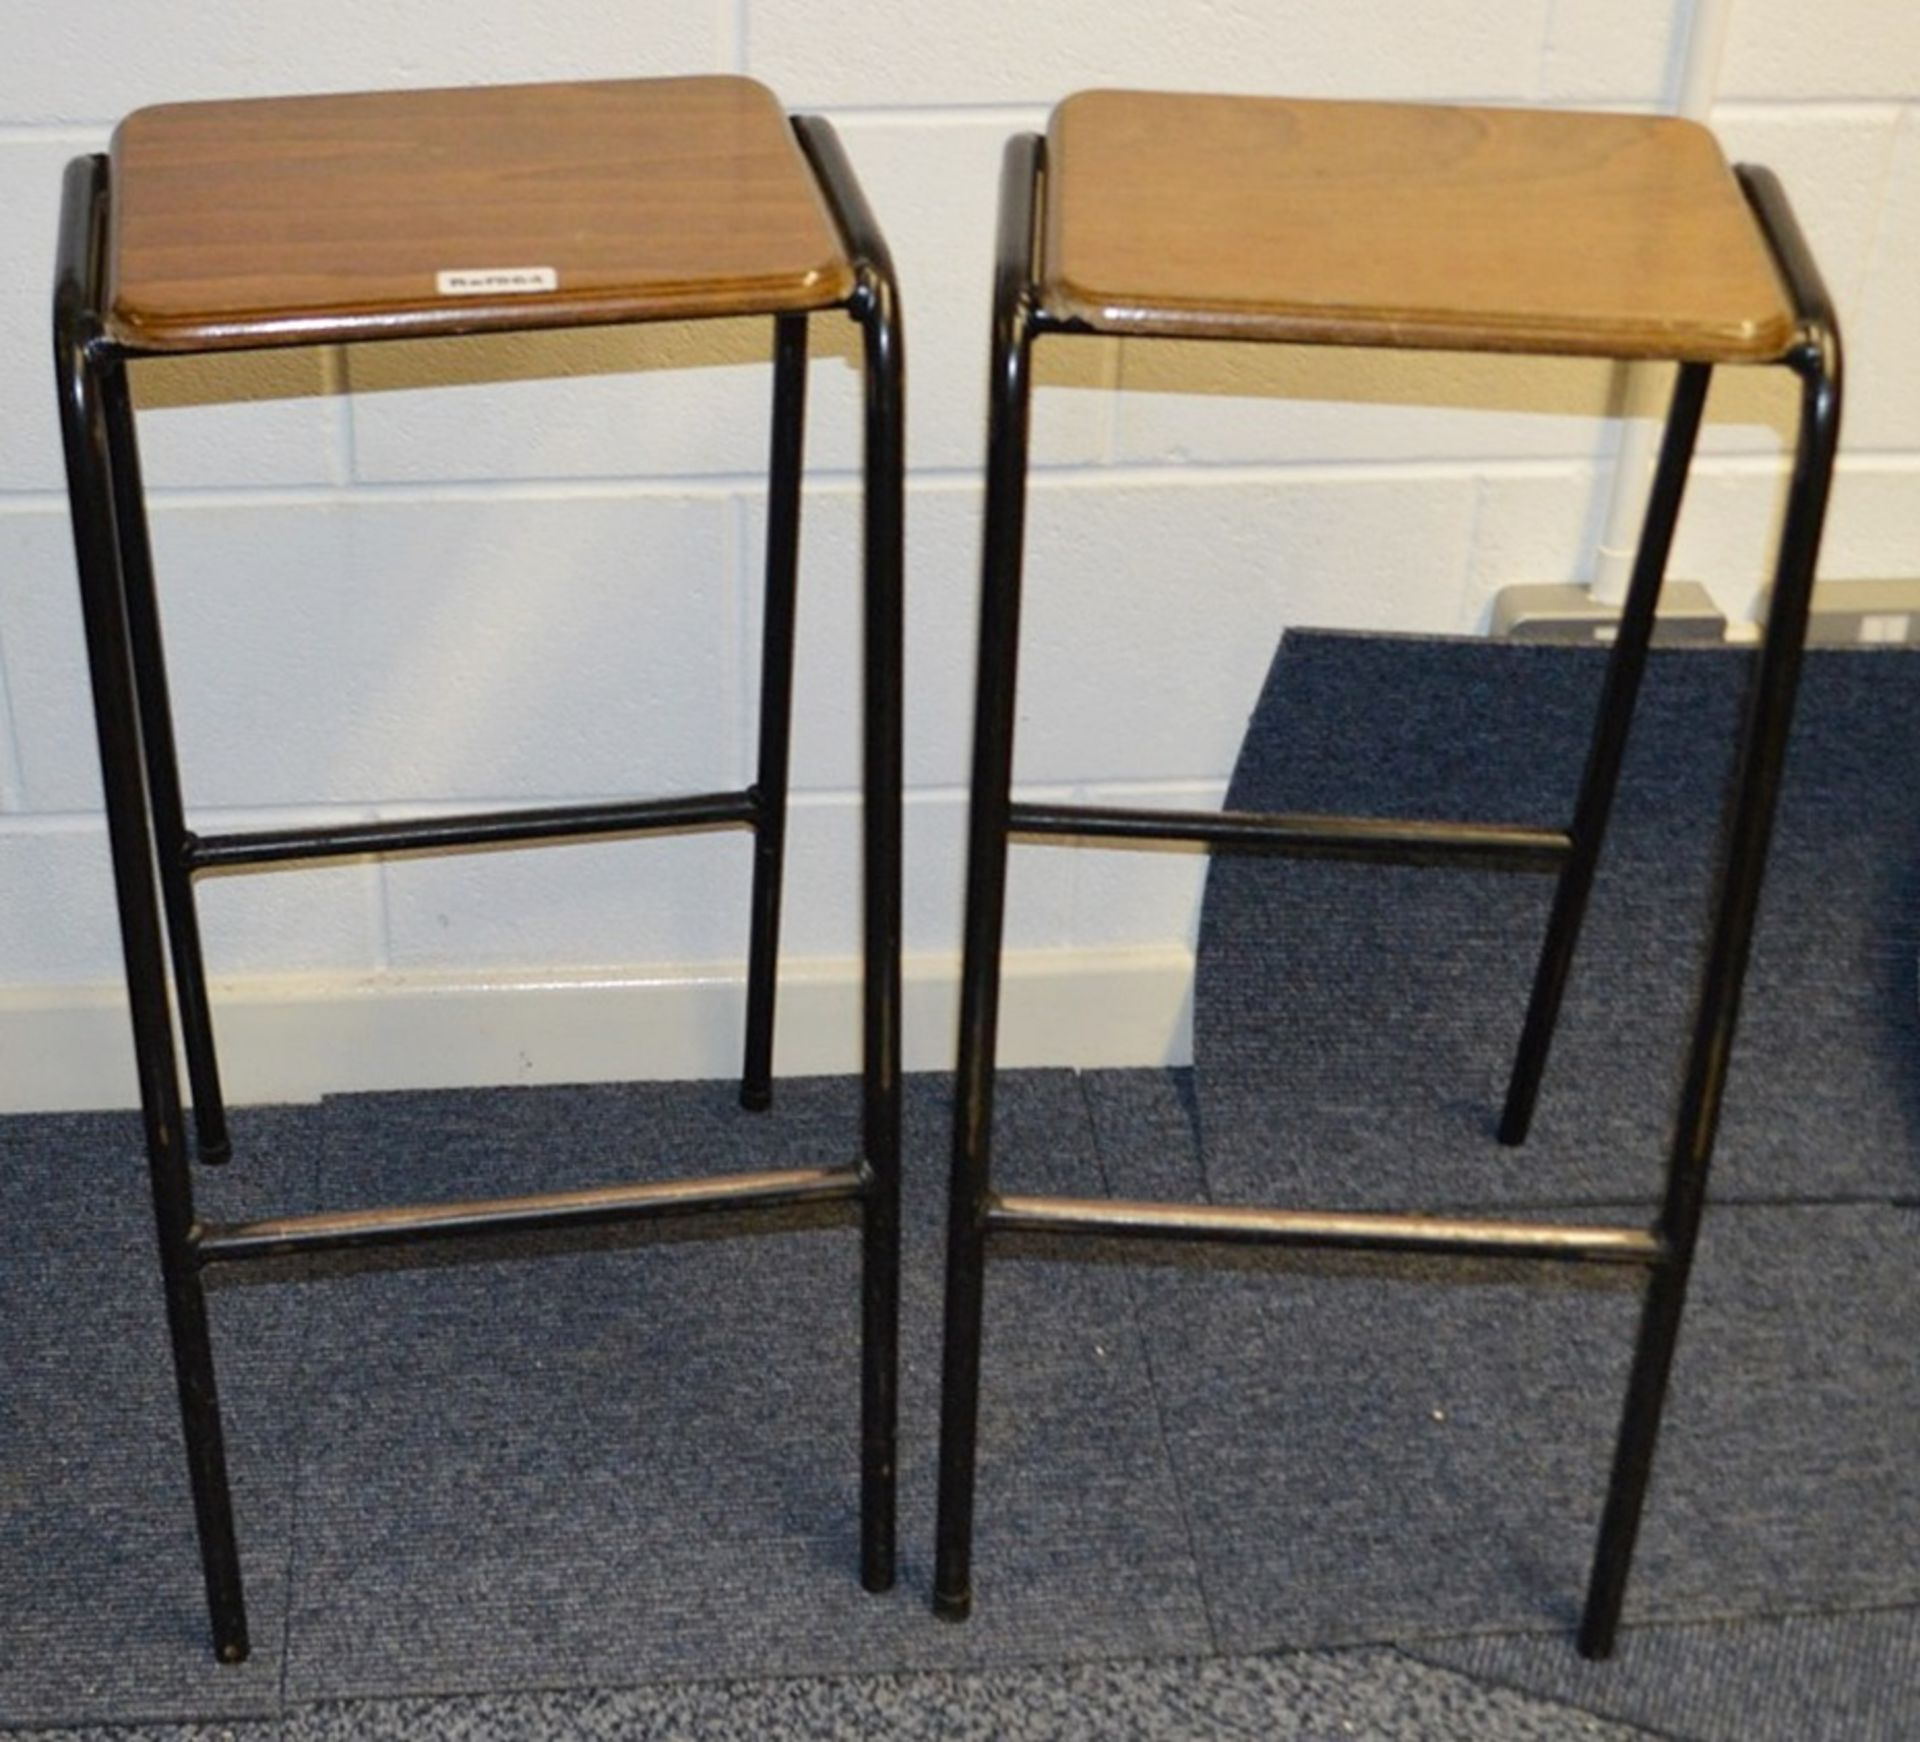 Lot 7510 - 2 x Trainspotters Branded Stacking Bar Stools - Used - Dimensions (approx) H74 x W36 x D43cm -